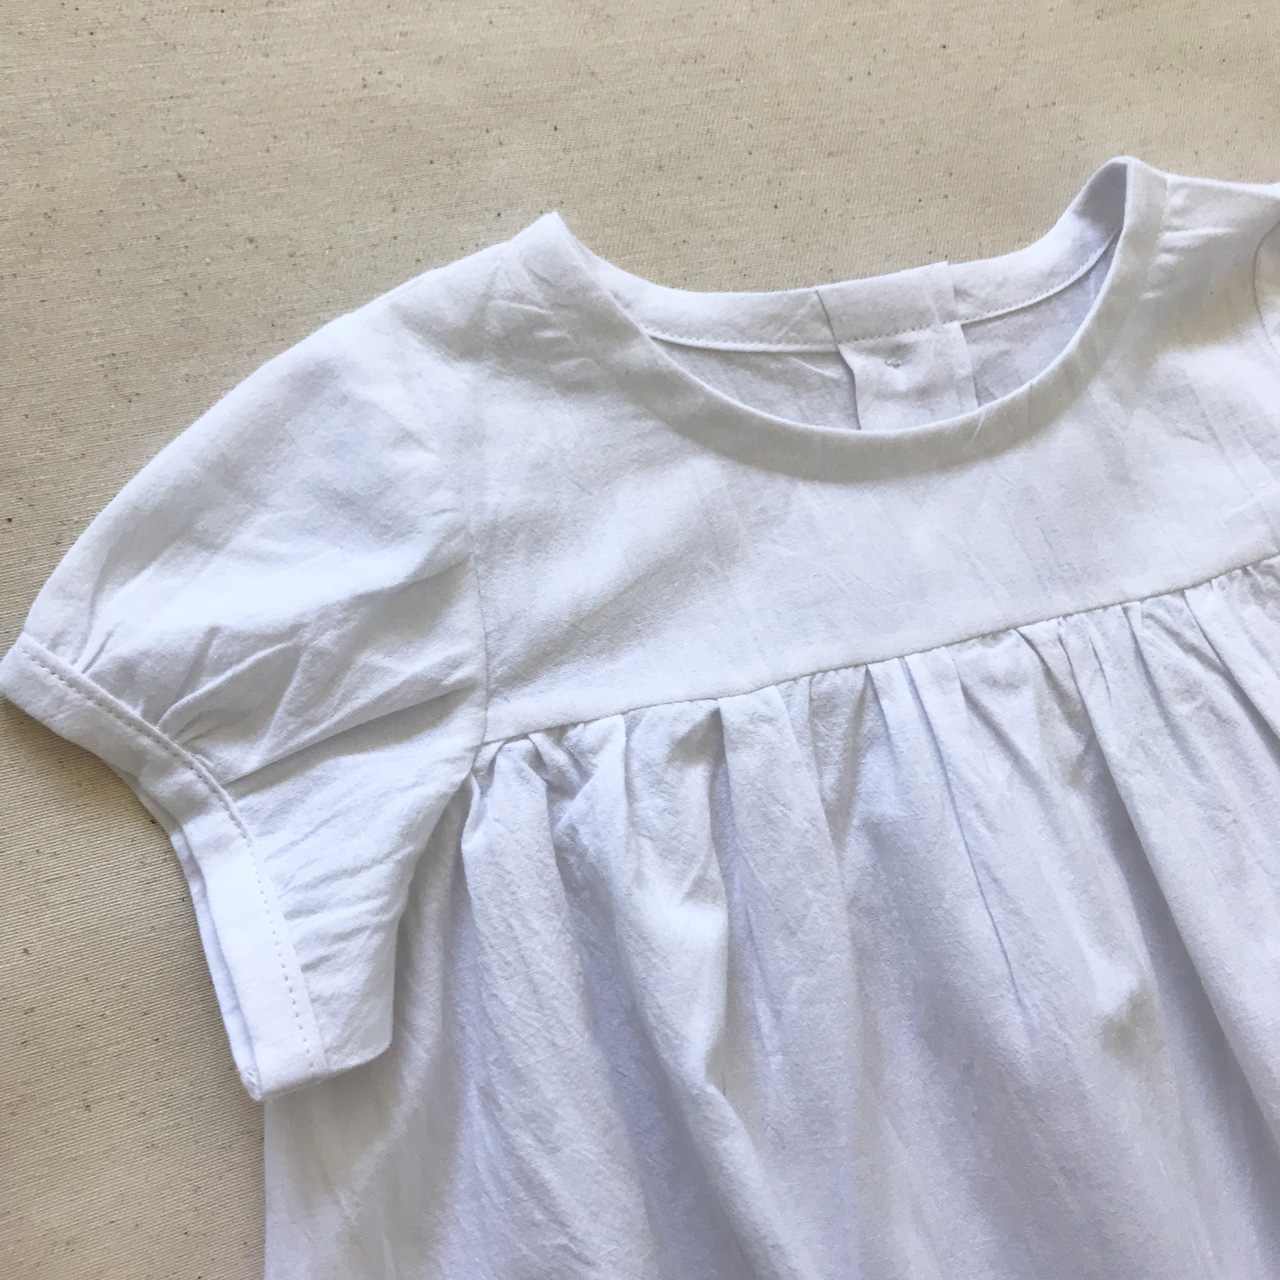 This little blouse top will go with any outfit.  Light weight and perfect for Spring / Summer days.